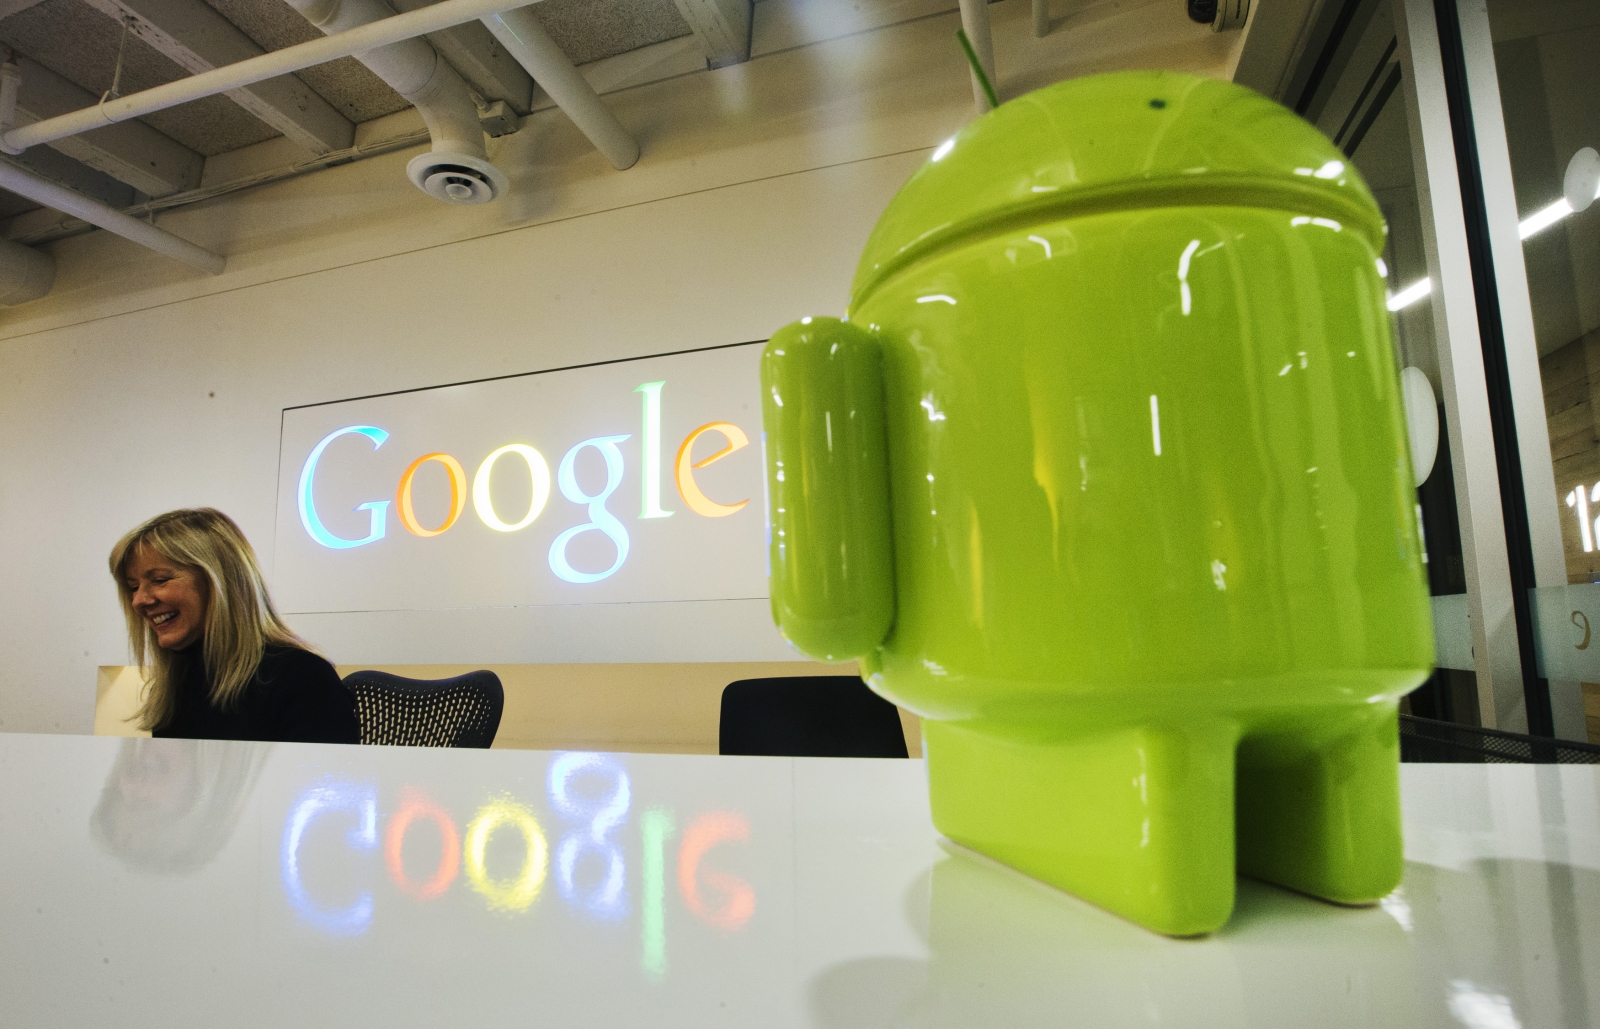 Google Android figurine